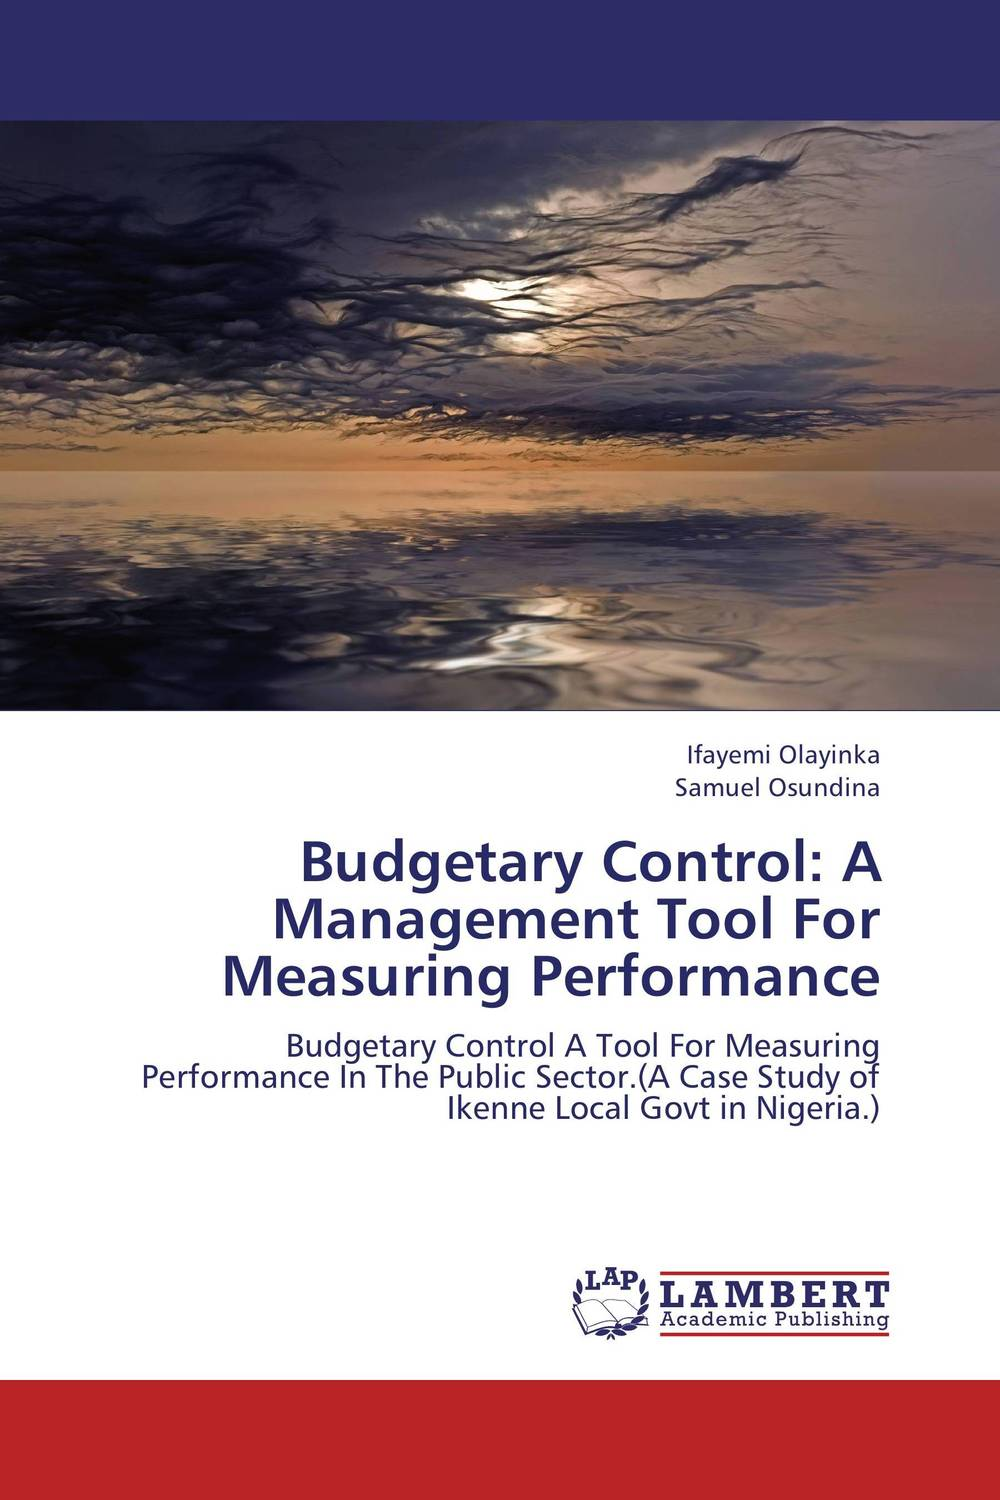 Budgetary Control: A Management Tool For Measuring Performance university management in practice and performance evaluation